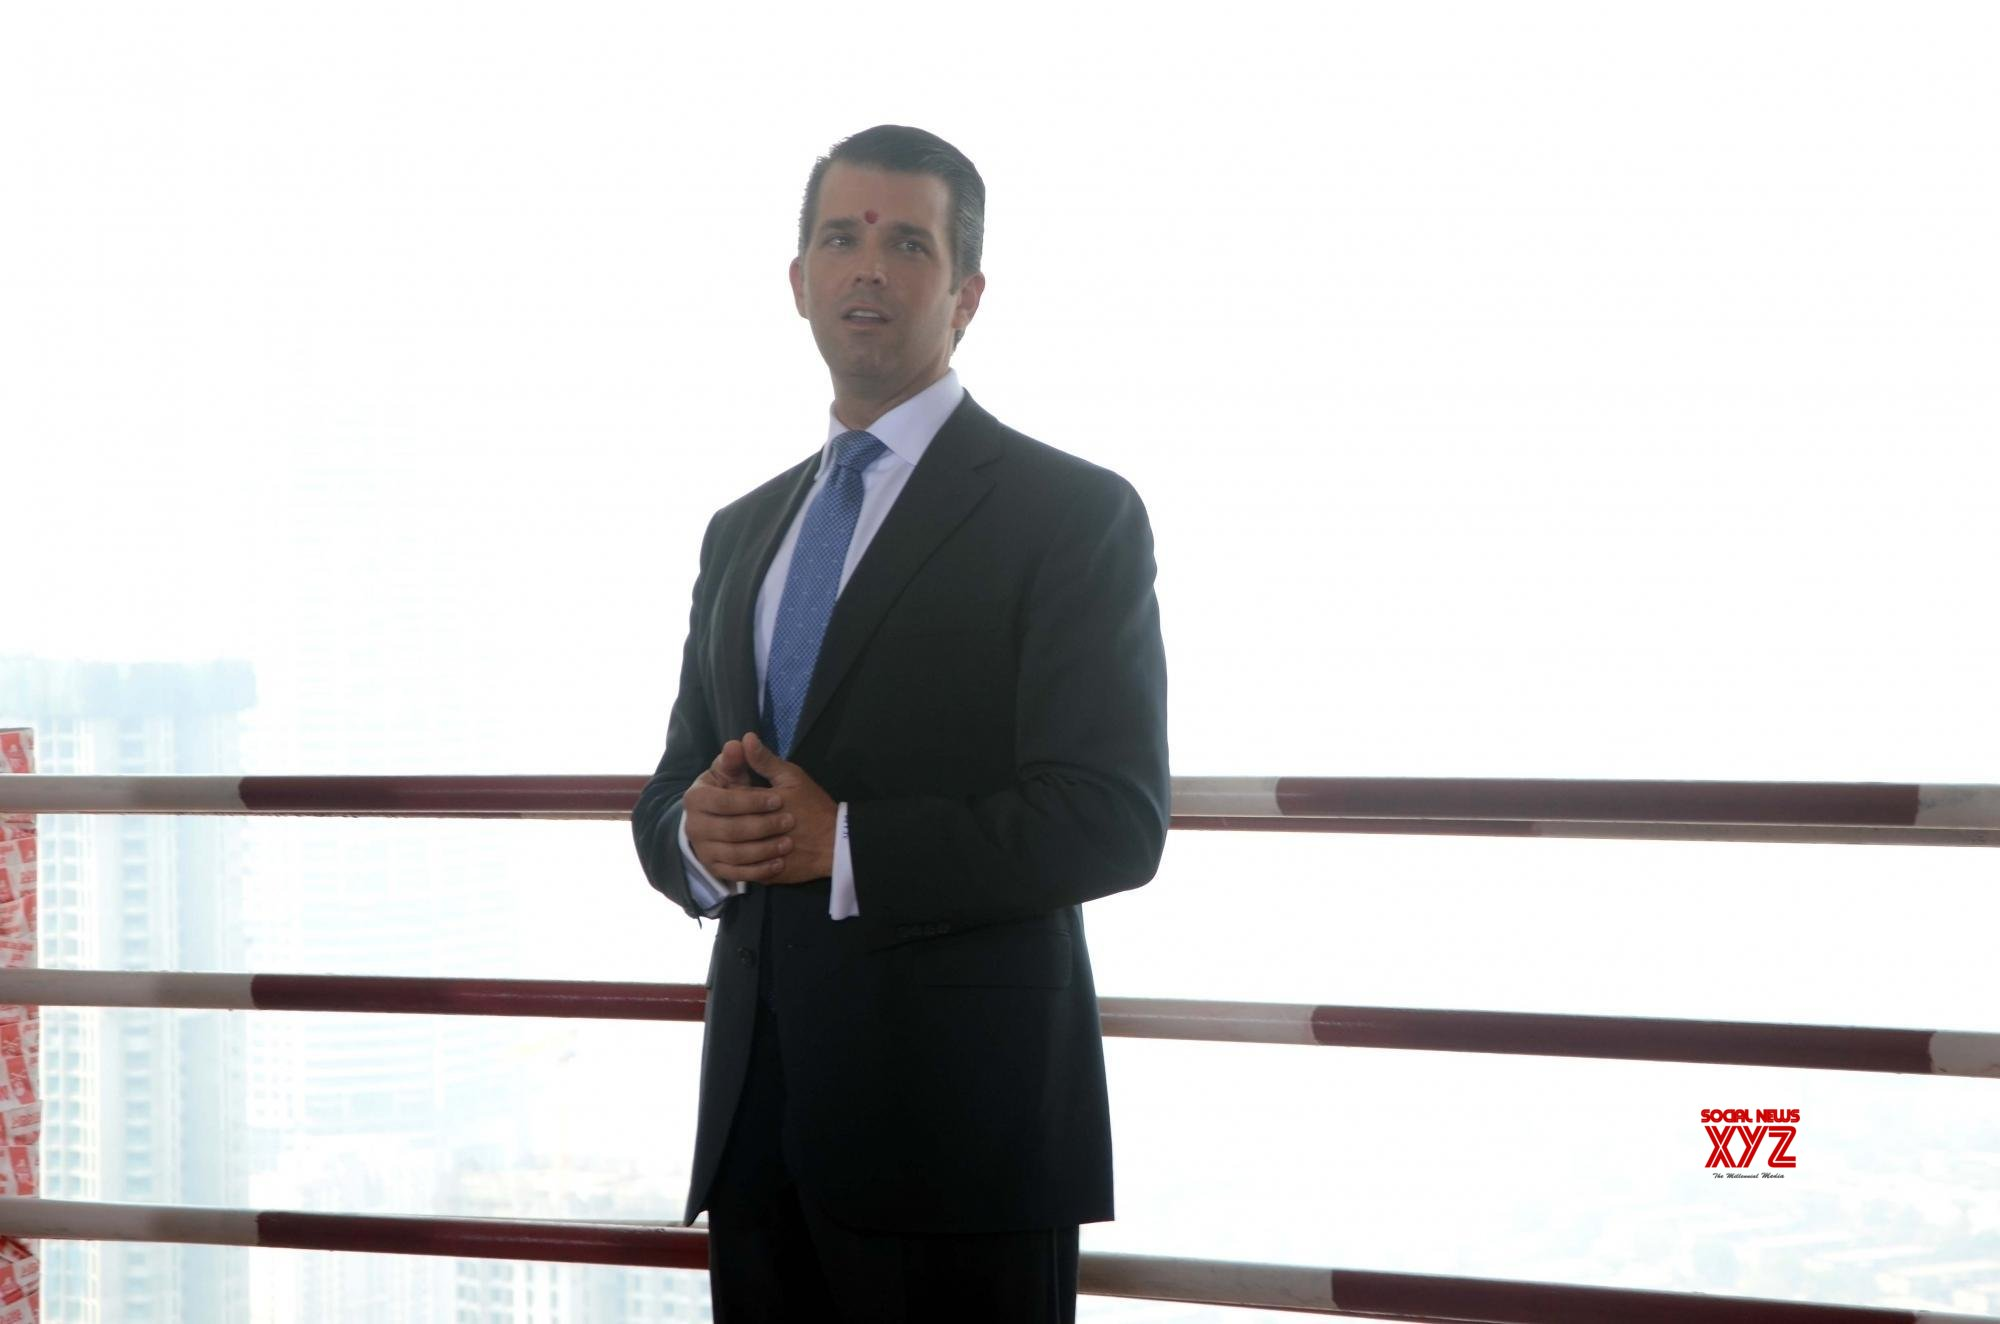 Trump Jr launches resorts, residences project in Indonesia